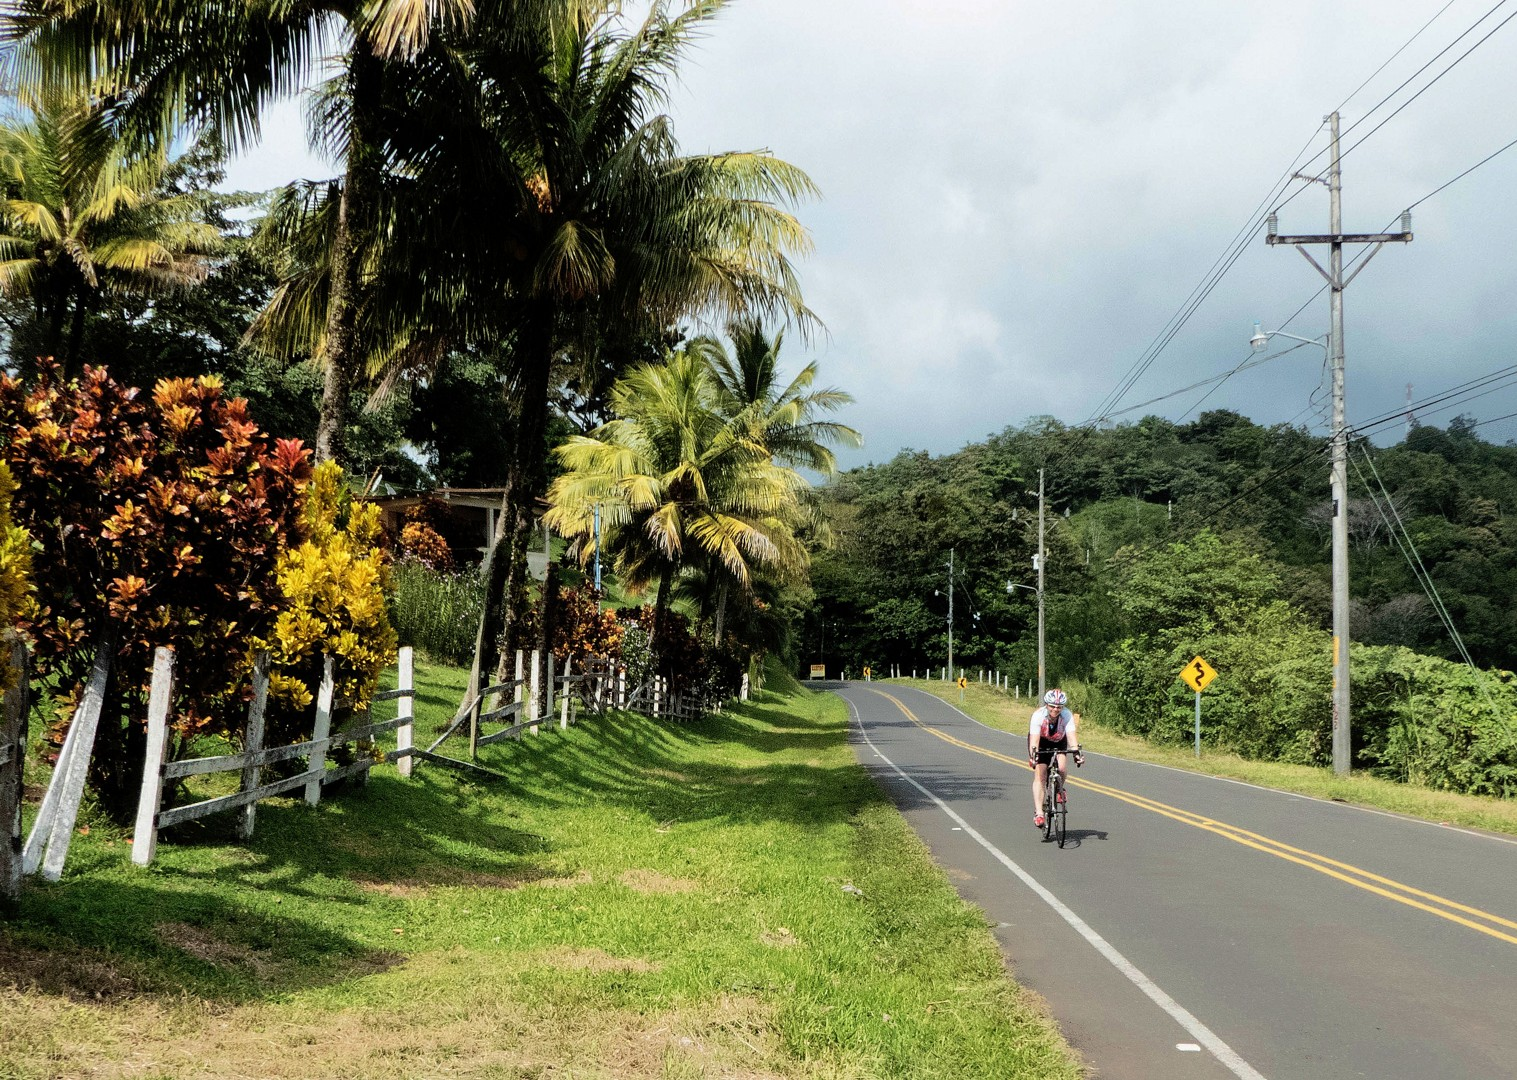 central-america-costa-rica-guided-road-cycling-holiday-ruta-de-los-volcanes.jpg - Costa Rica - Ruta de los Volcanes - Guided Road Cycling Holiday - Road Cycling